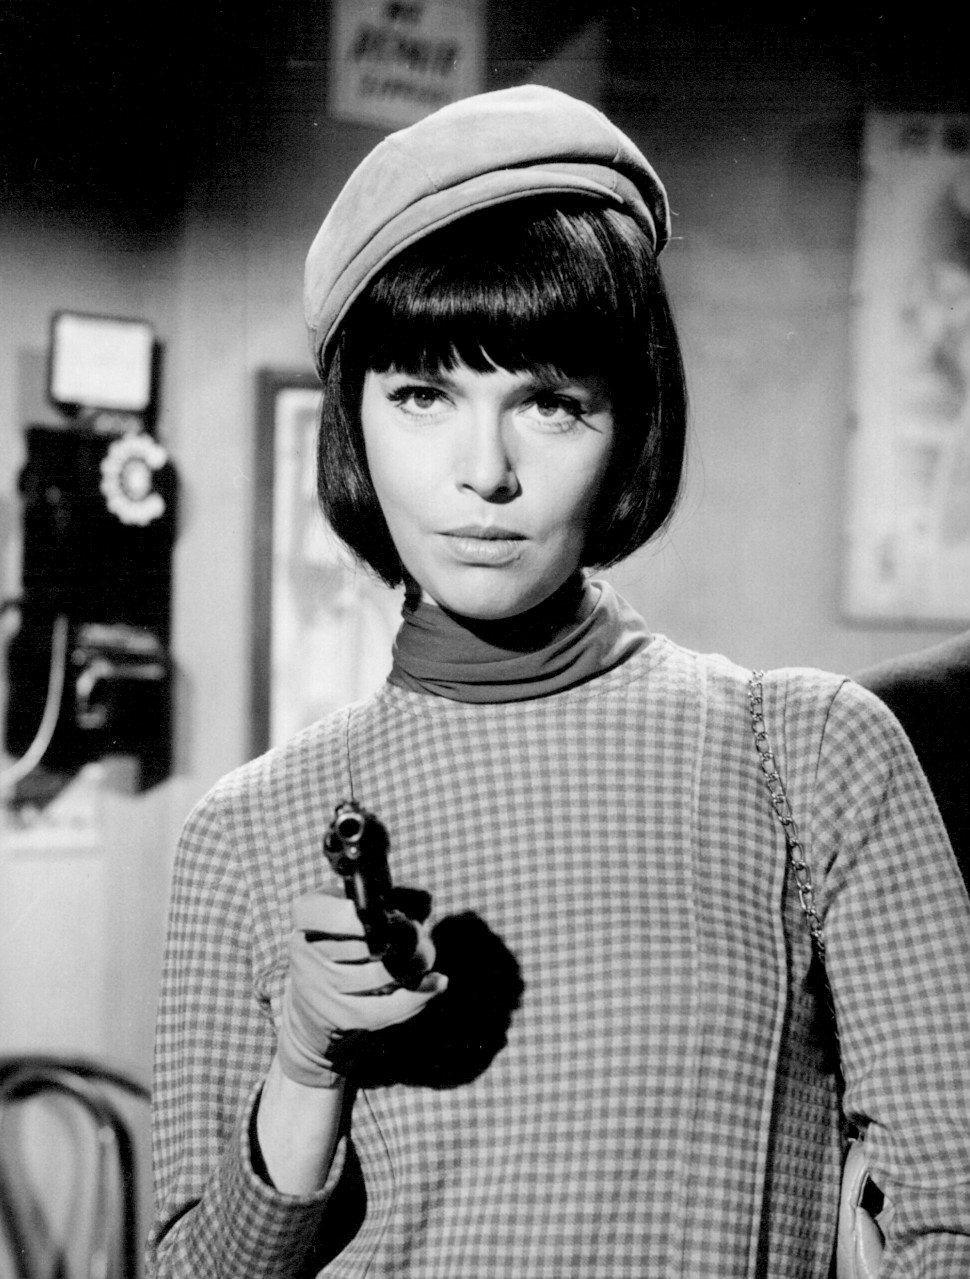 Barbara Feldon in the role of Agent 99. She is pointing gun towards someone. The picture is B&W.